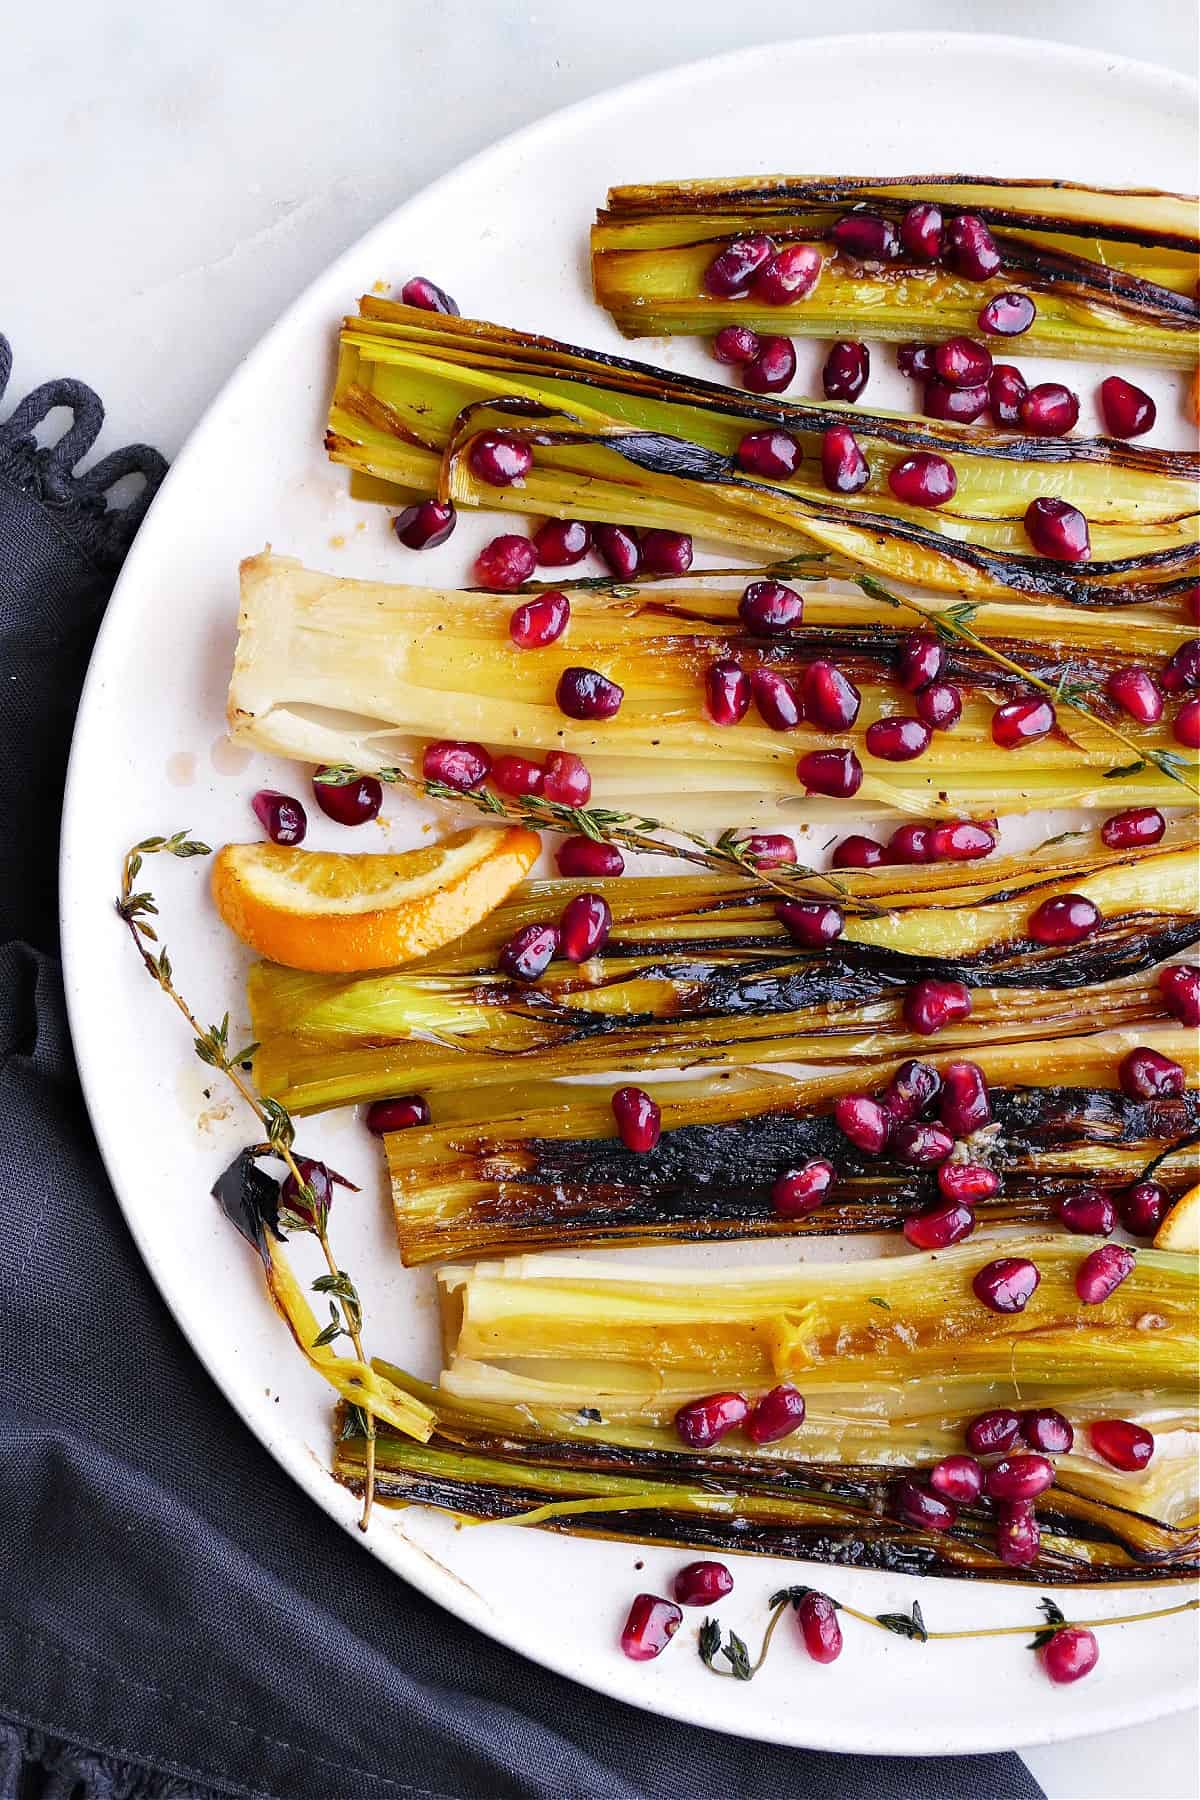 caramelized leeks with orange ginger pomegranate relish on a platter on a counter